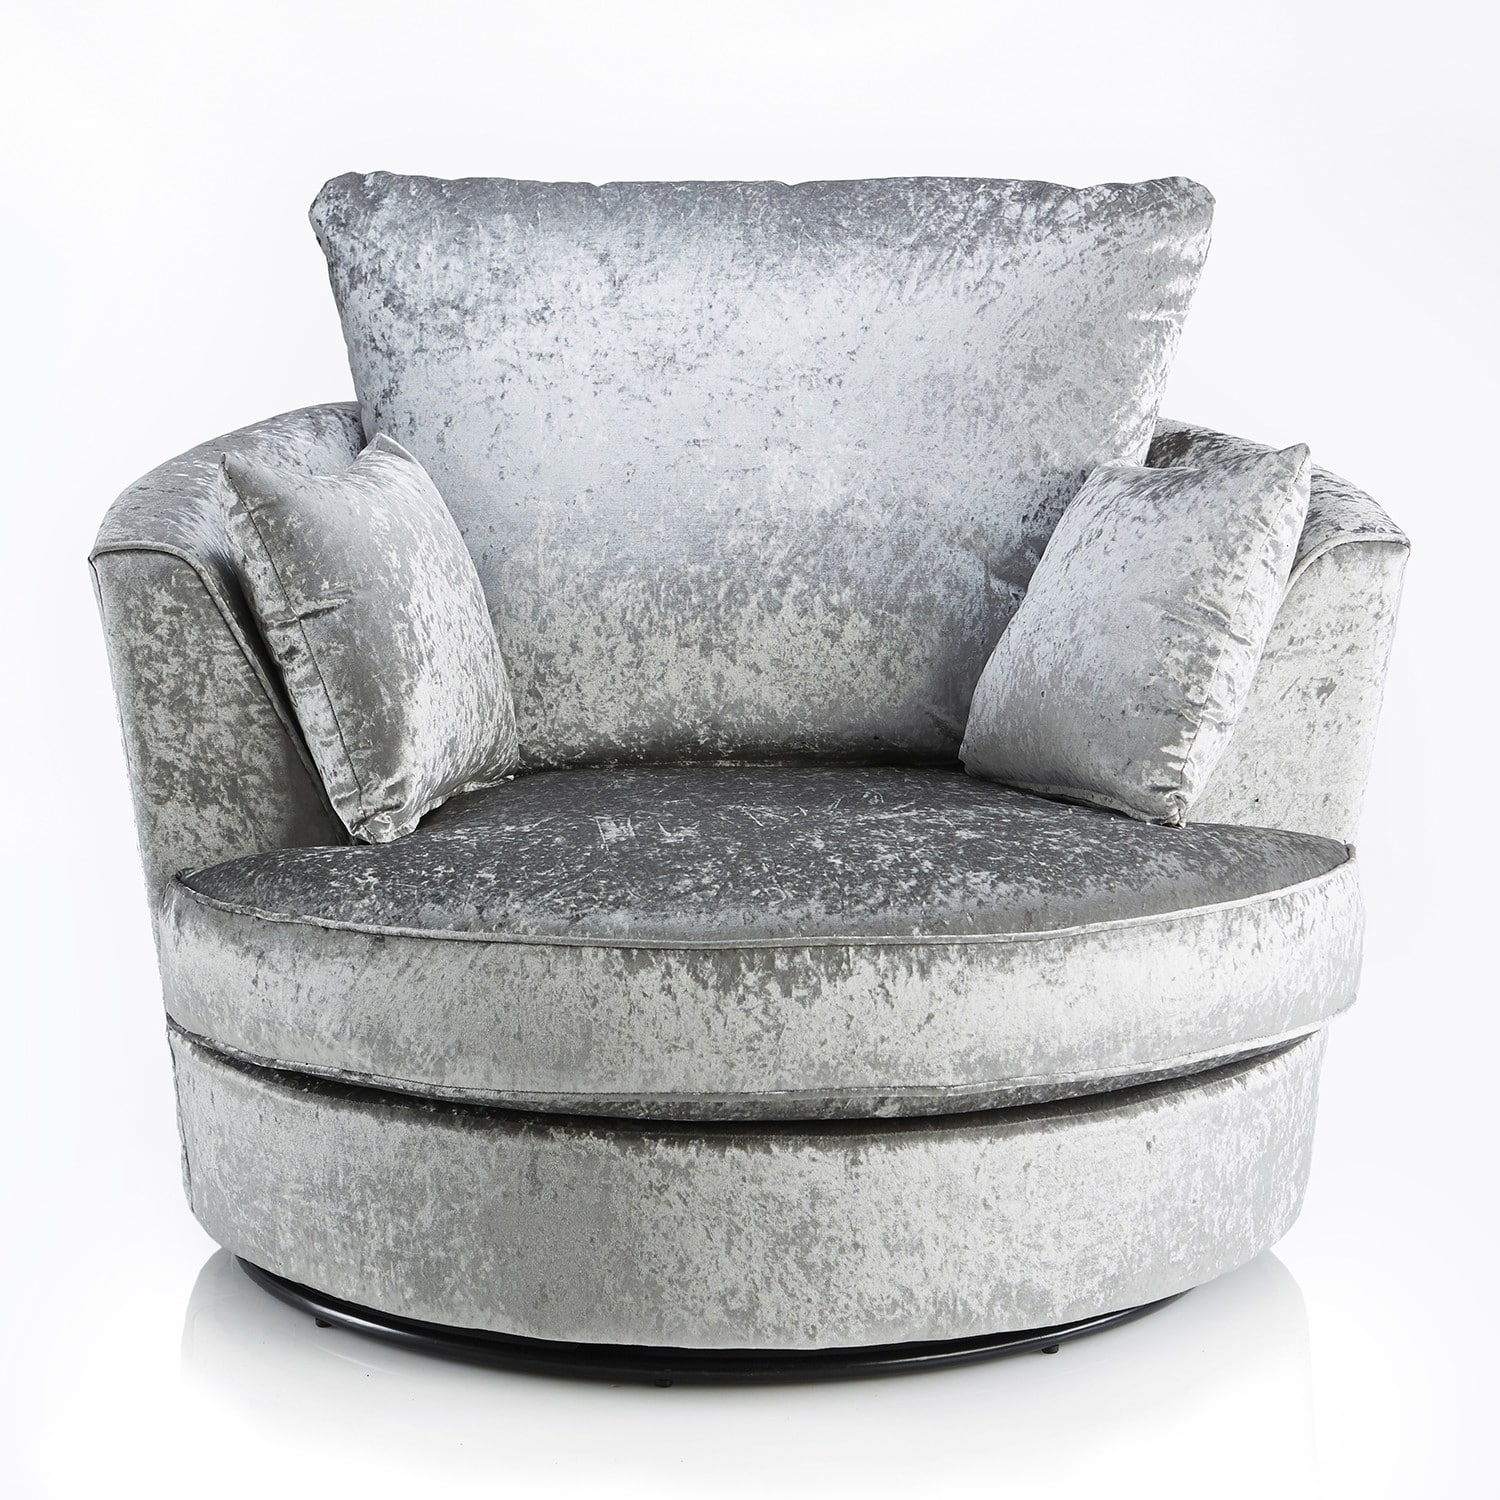 Crushed Velvet Furniture | Sofas, Beds, Chairs, Cushions Throughout Sofas With Swivel Chair (View 6 of 10)